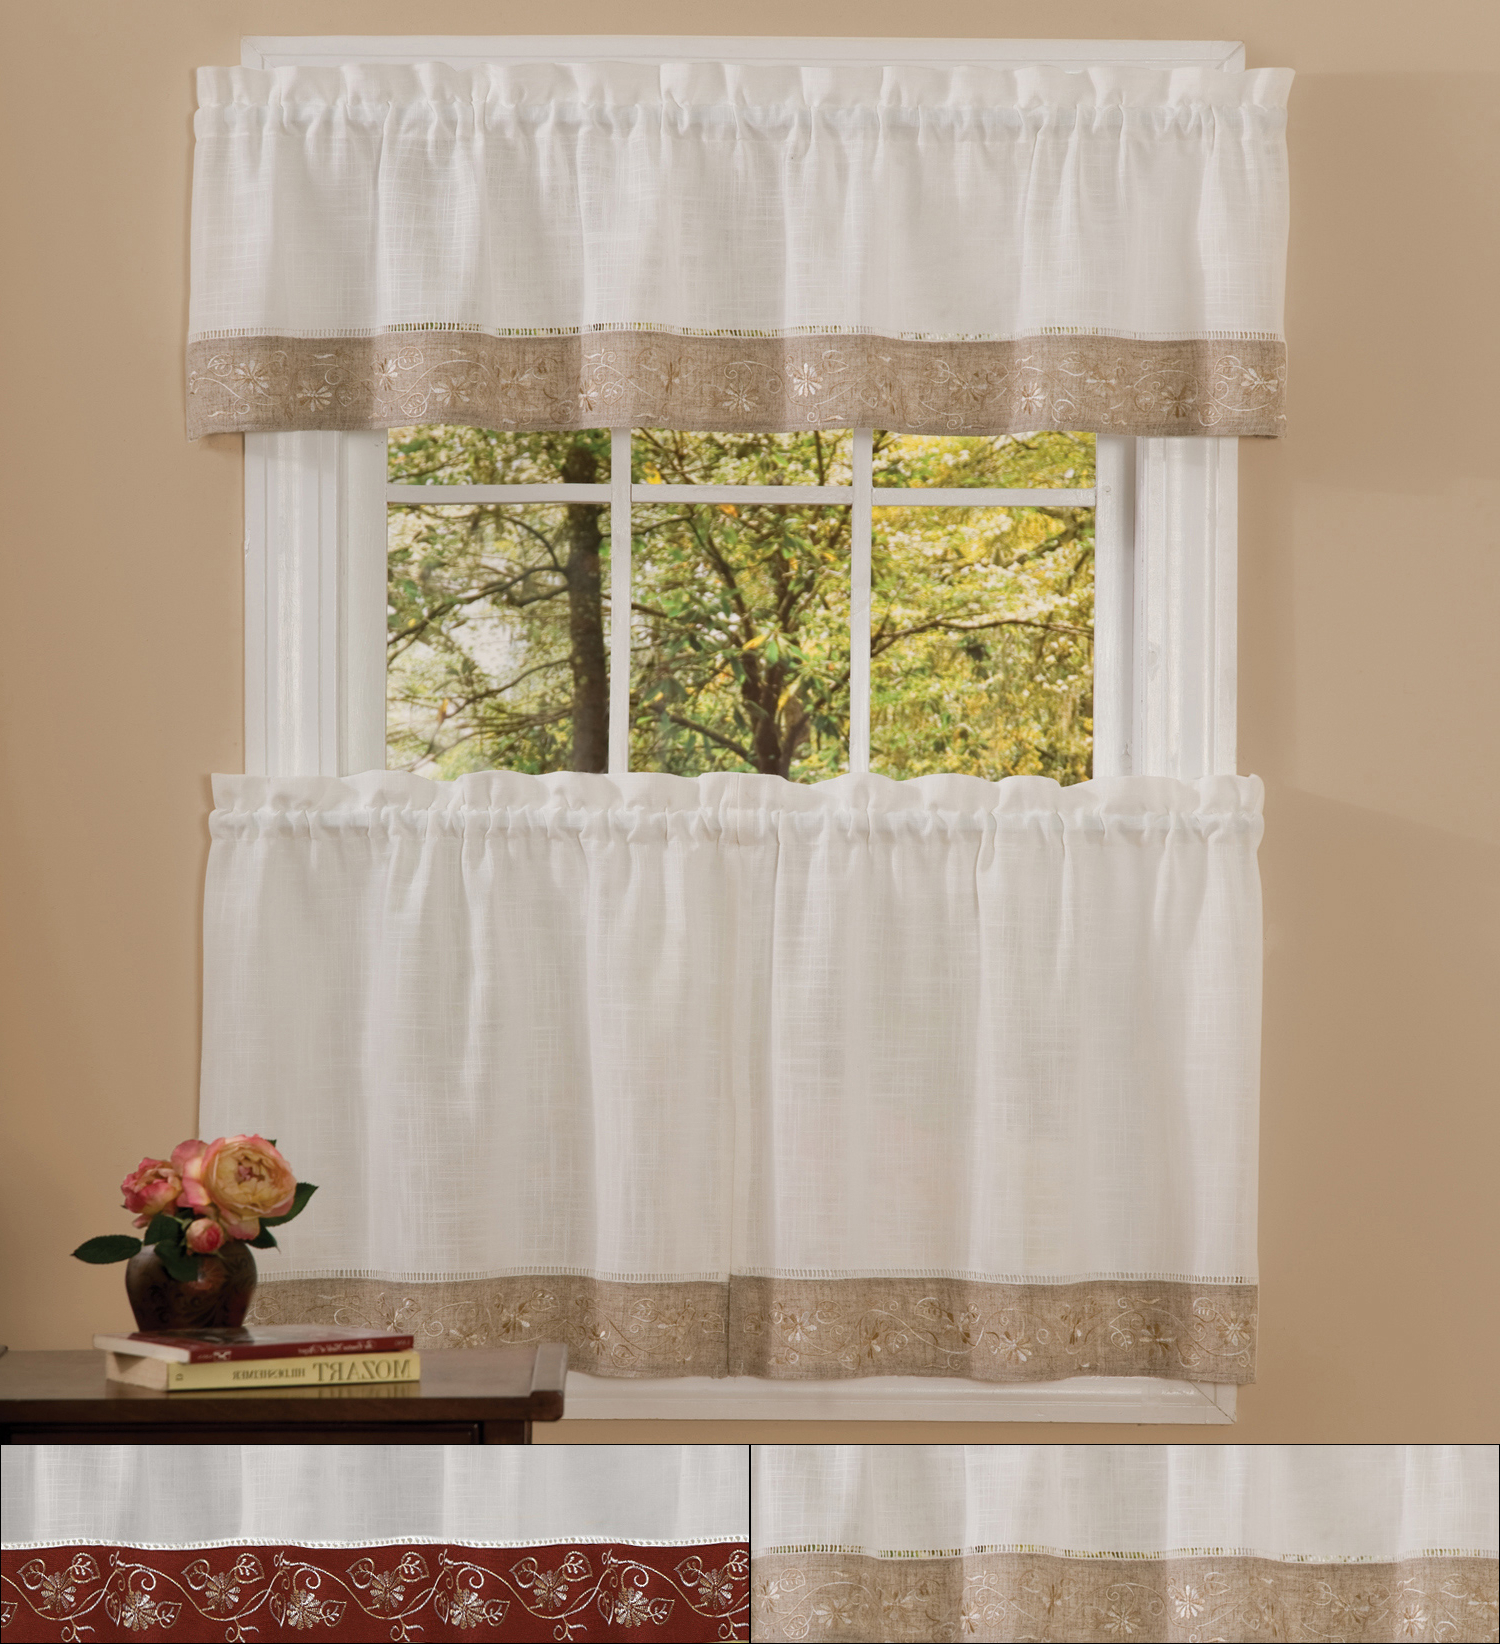 """Trendy Details About Oakwood Linen Style Kitchen Window Curtain 24"""" Tiers & Valance Set With Regard To Floral Lace Rod Pocket Kitchen Curtain Valance And Tiers Sets (View 10 of 20)"""